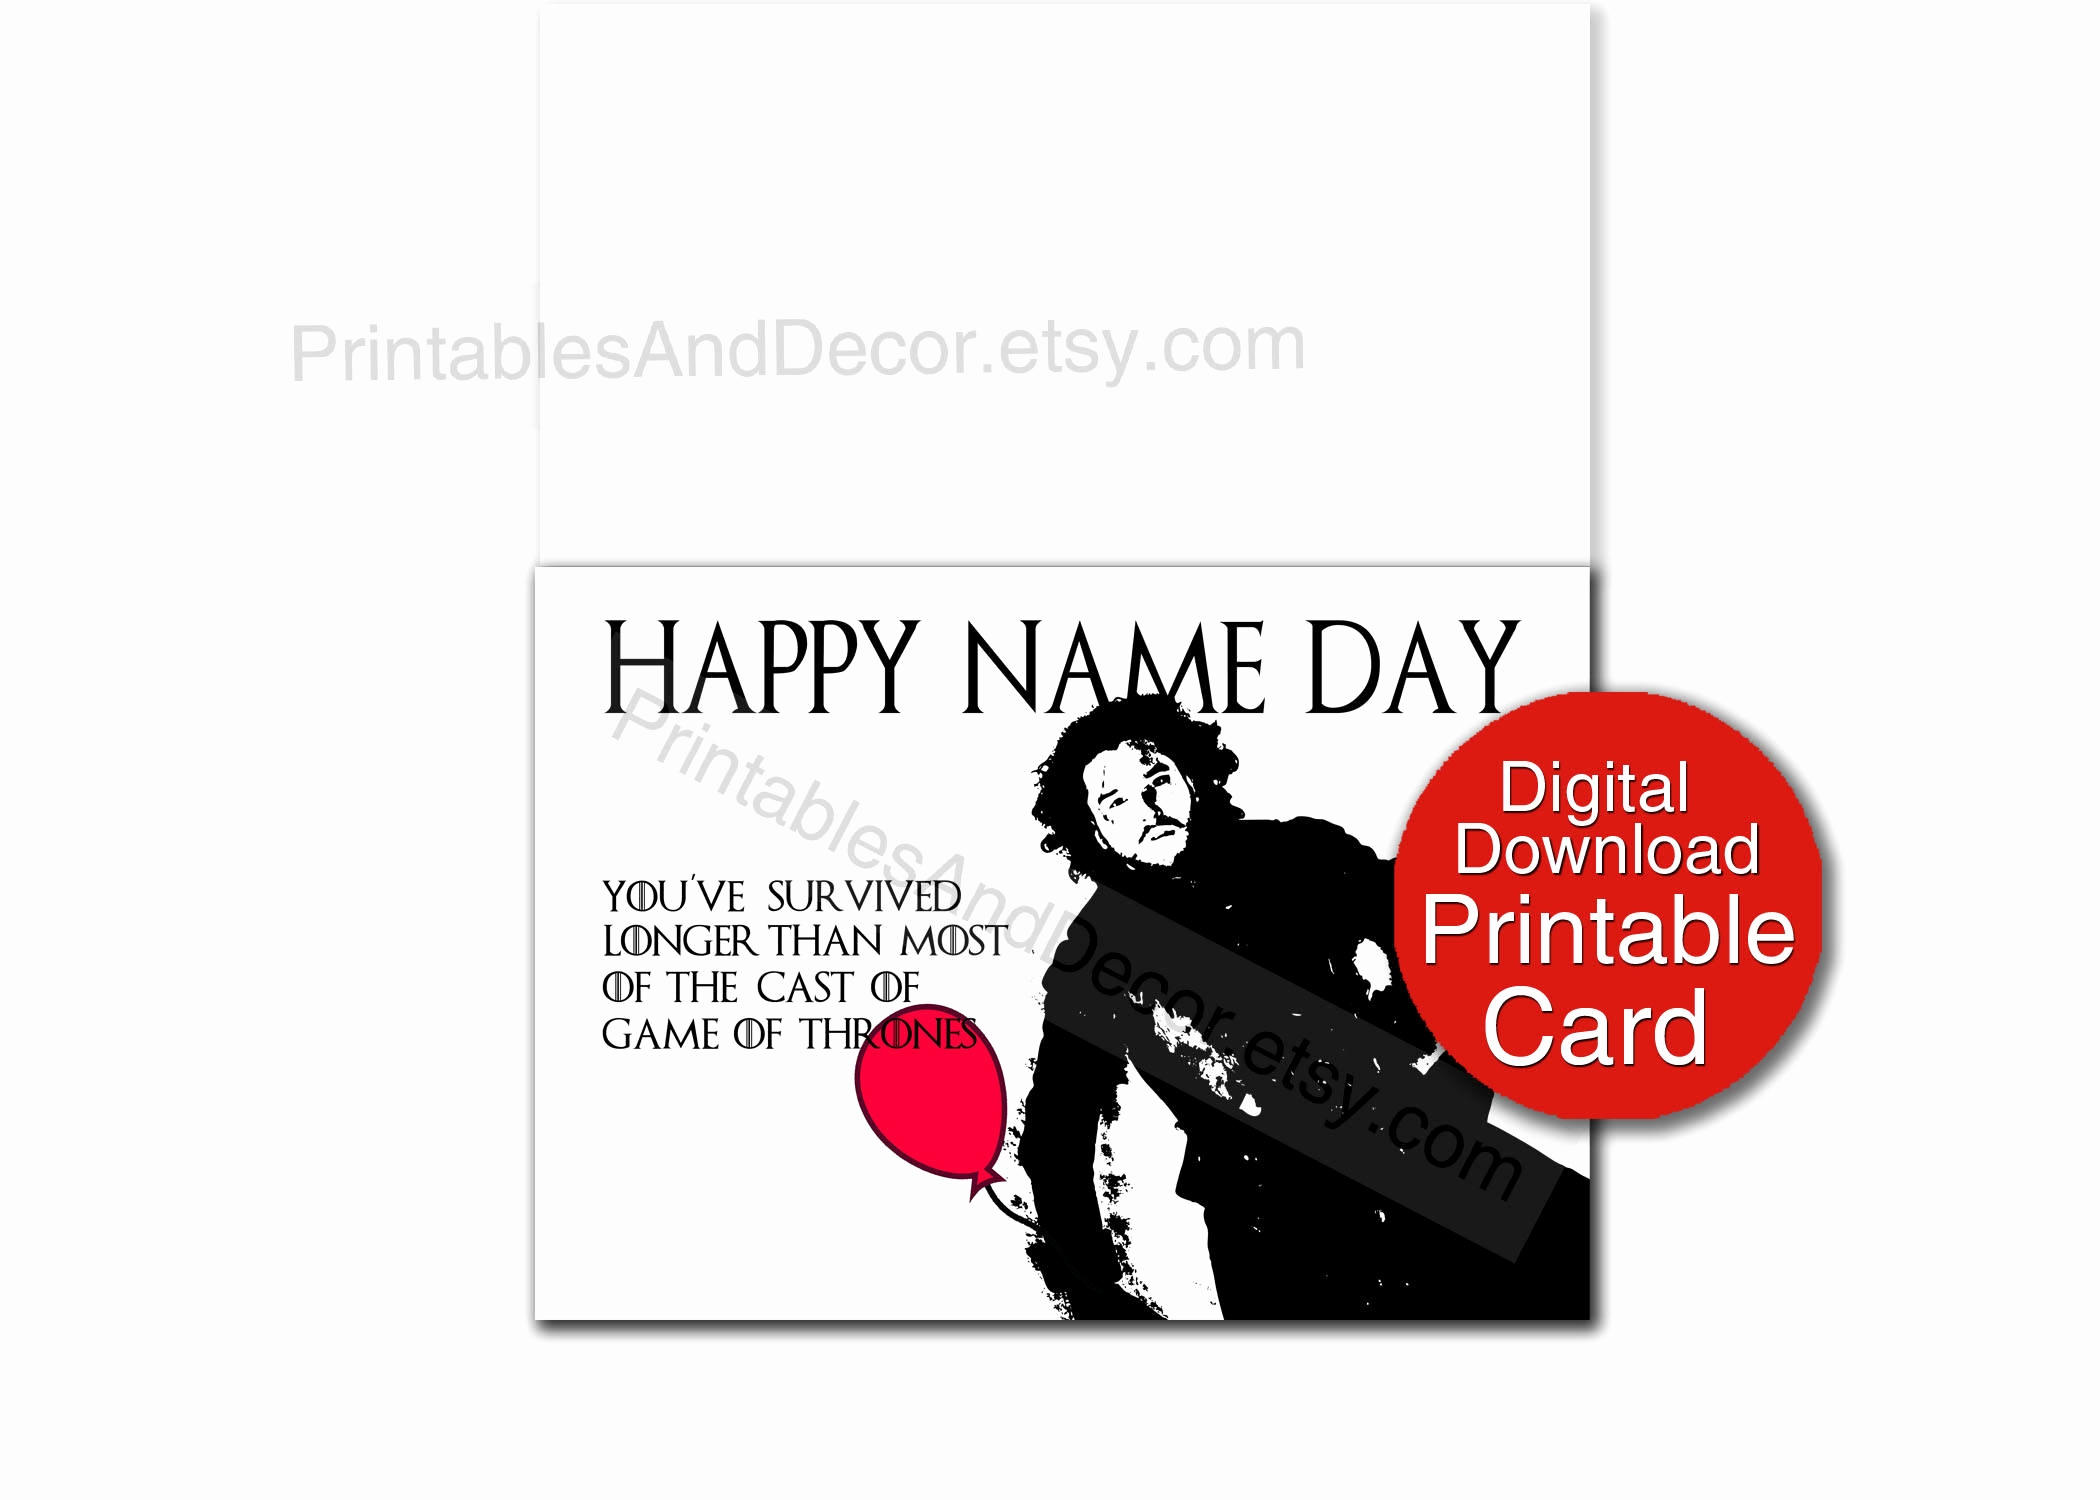 automatic birthday card service ; automatic-birthday-card-service-inspirational-printable-game-of-thrones-birthday-card-happy-nameday-jon-snow-of-automatic-birthday-card-service